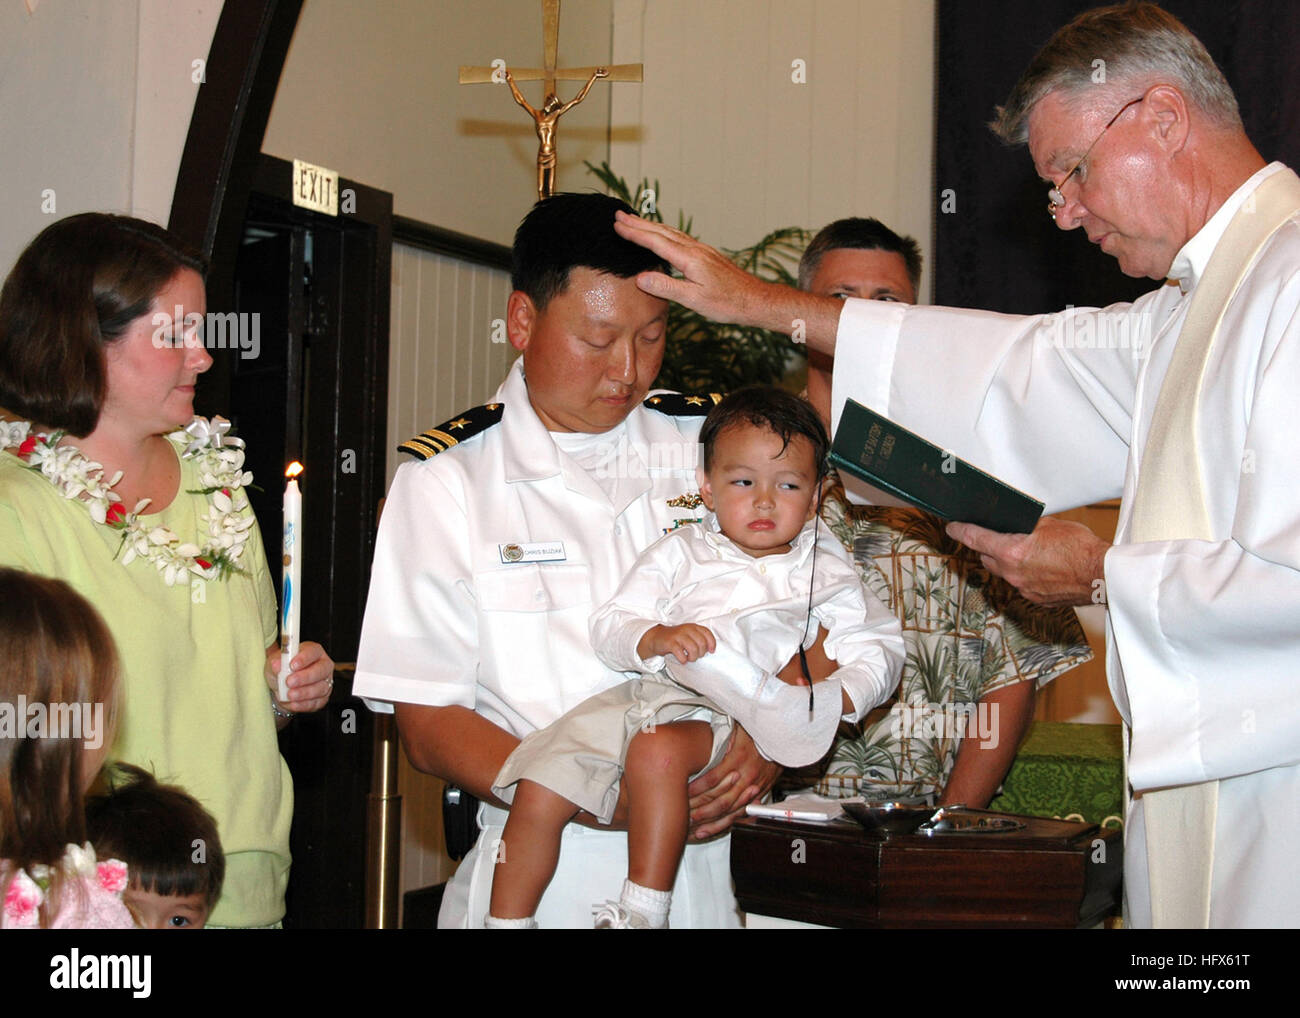 050711-N-5783F-001